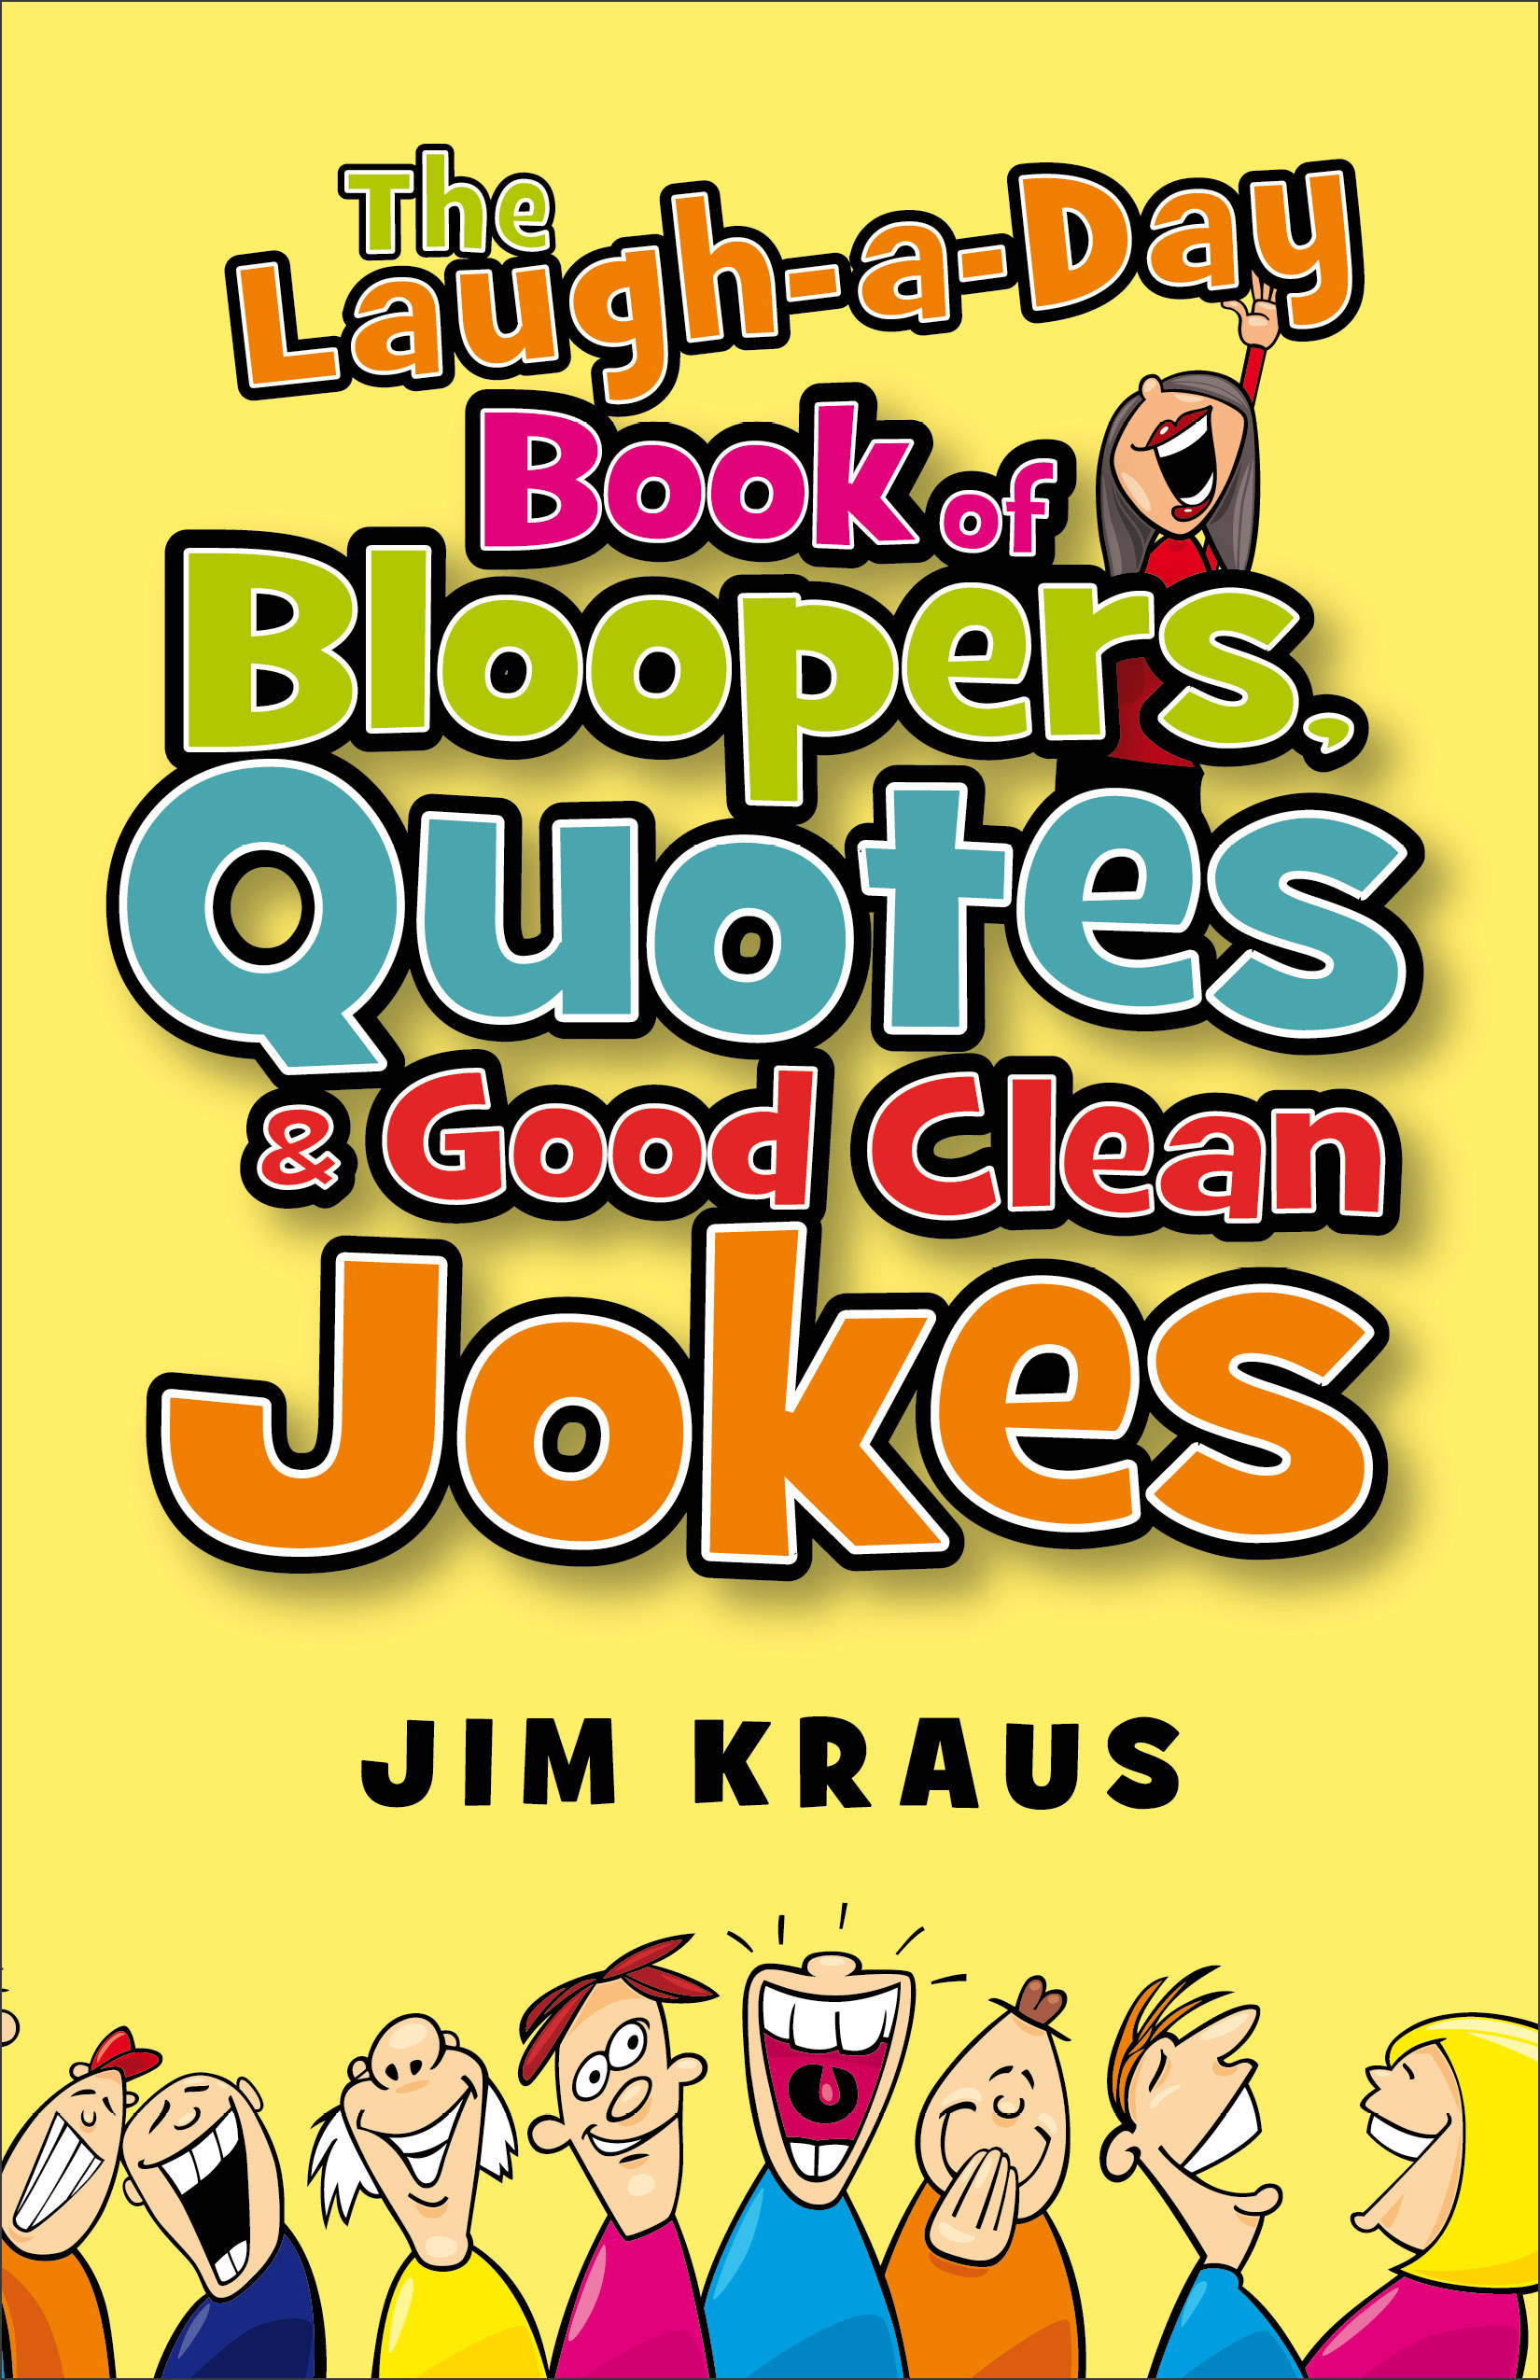 Library Quotes The Laughaday Book Of Bloopers Quotes & Good Clean Jokes